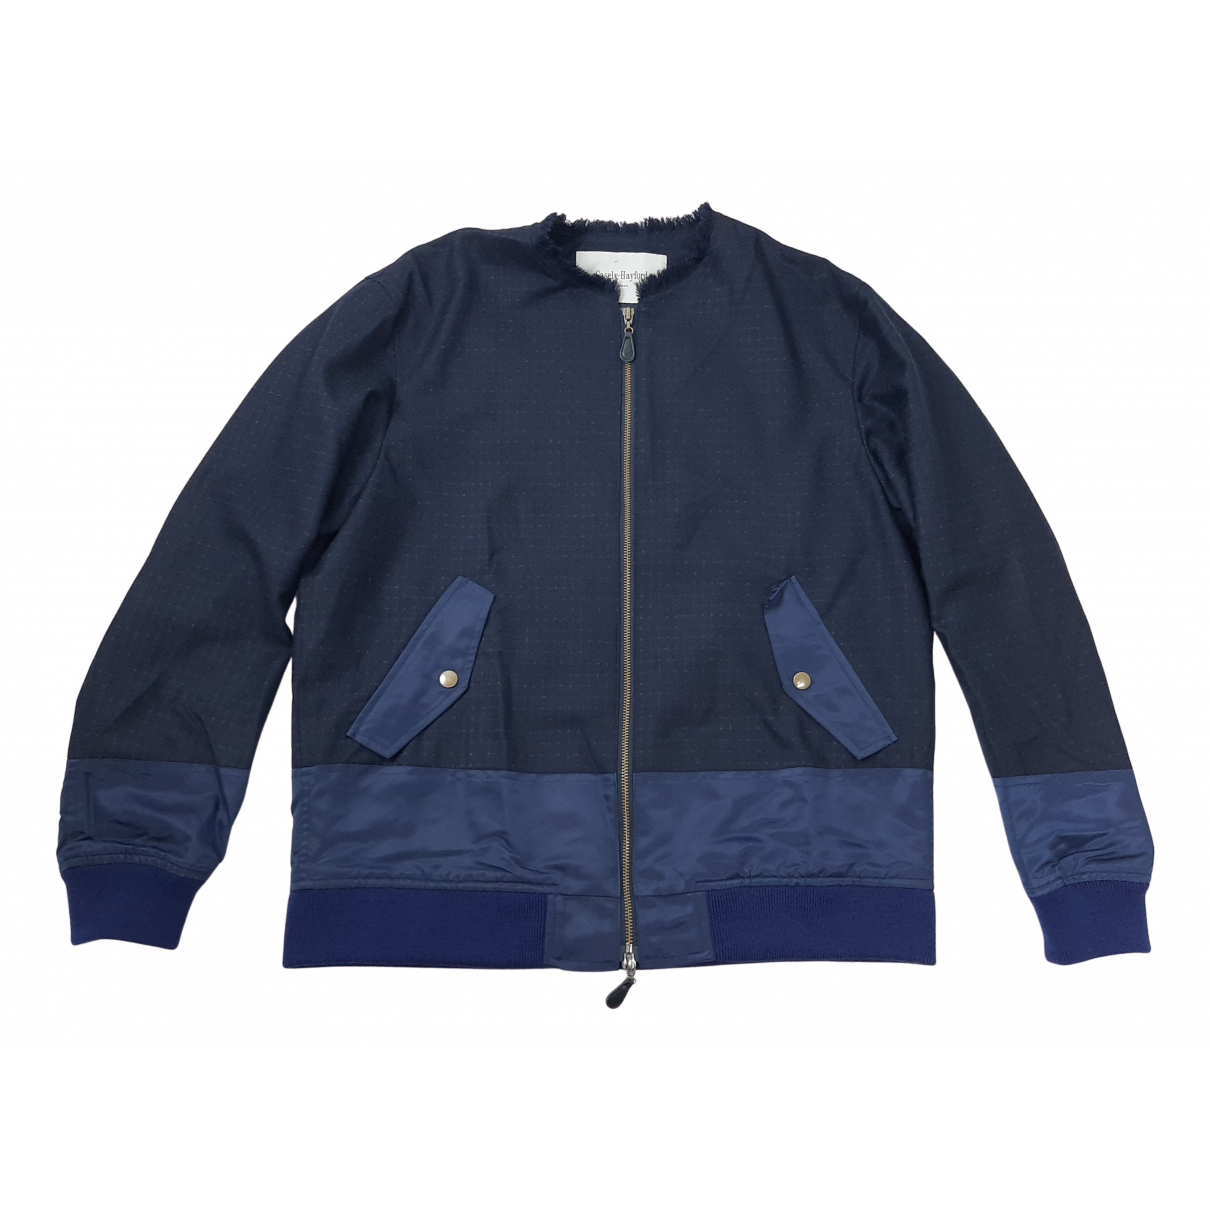 Casely-hayford \N Jacke in  Marine Wolle